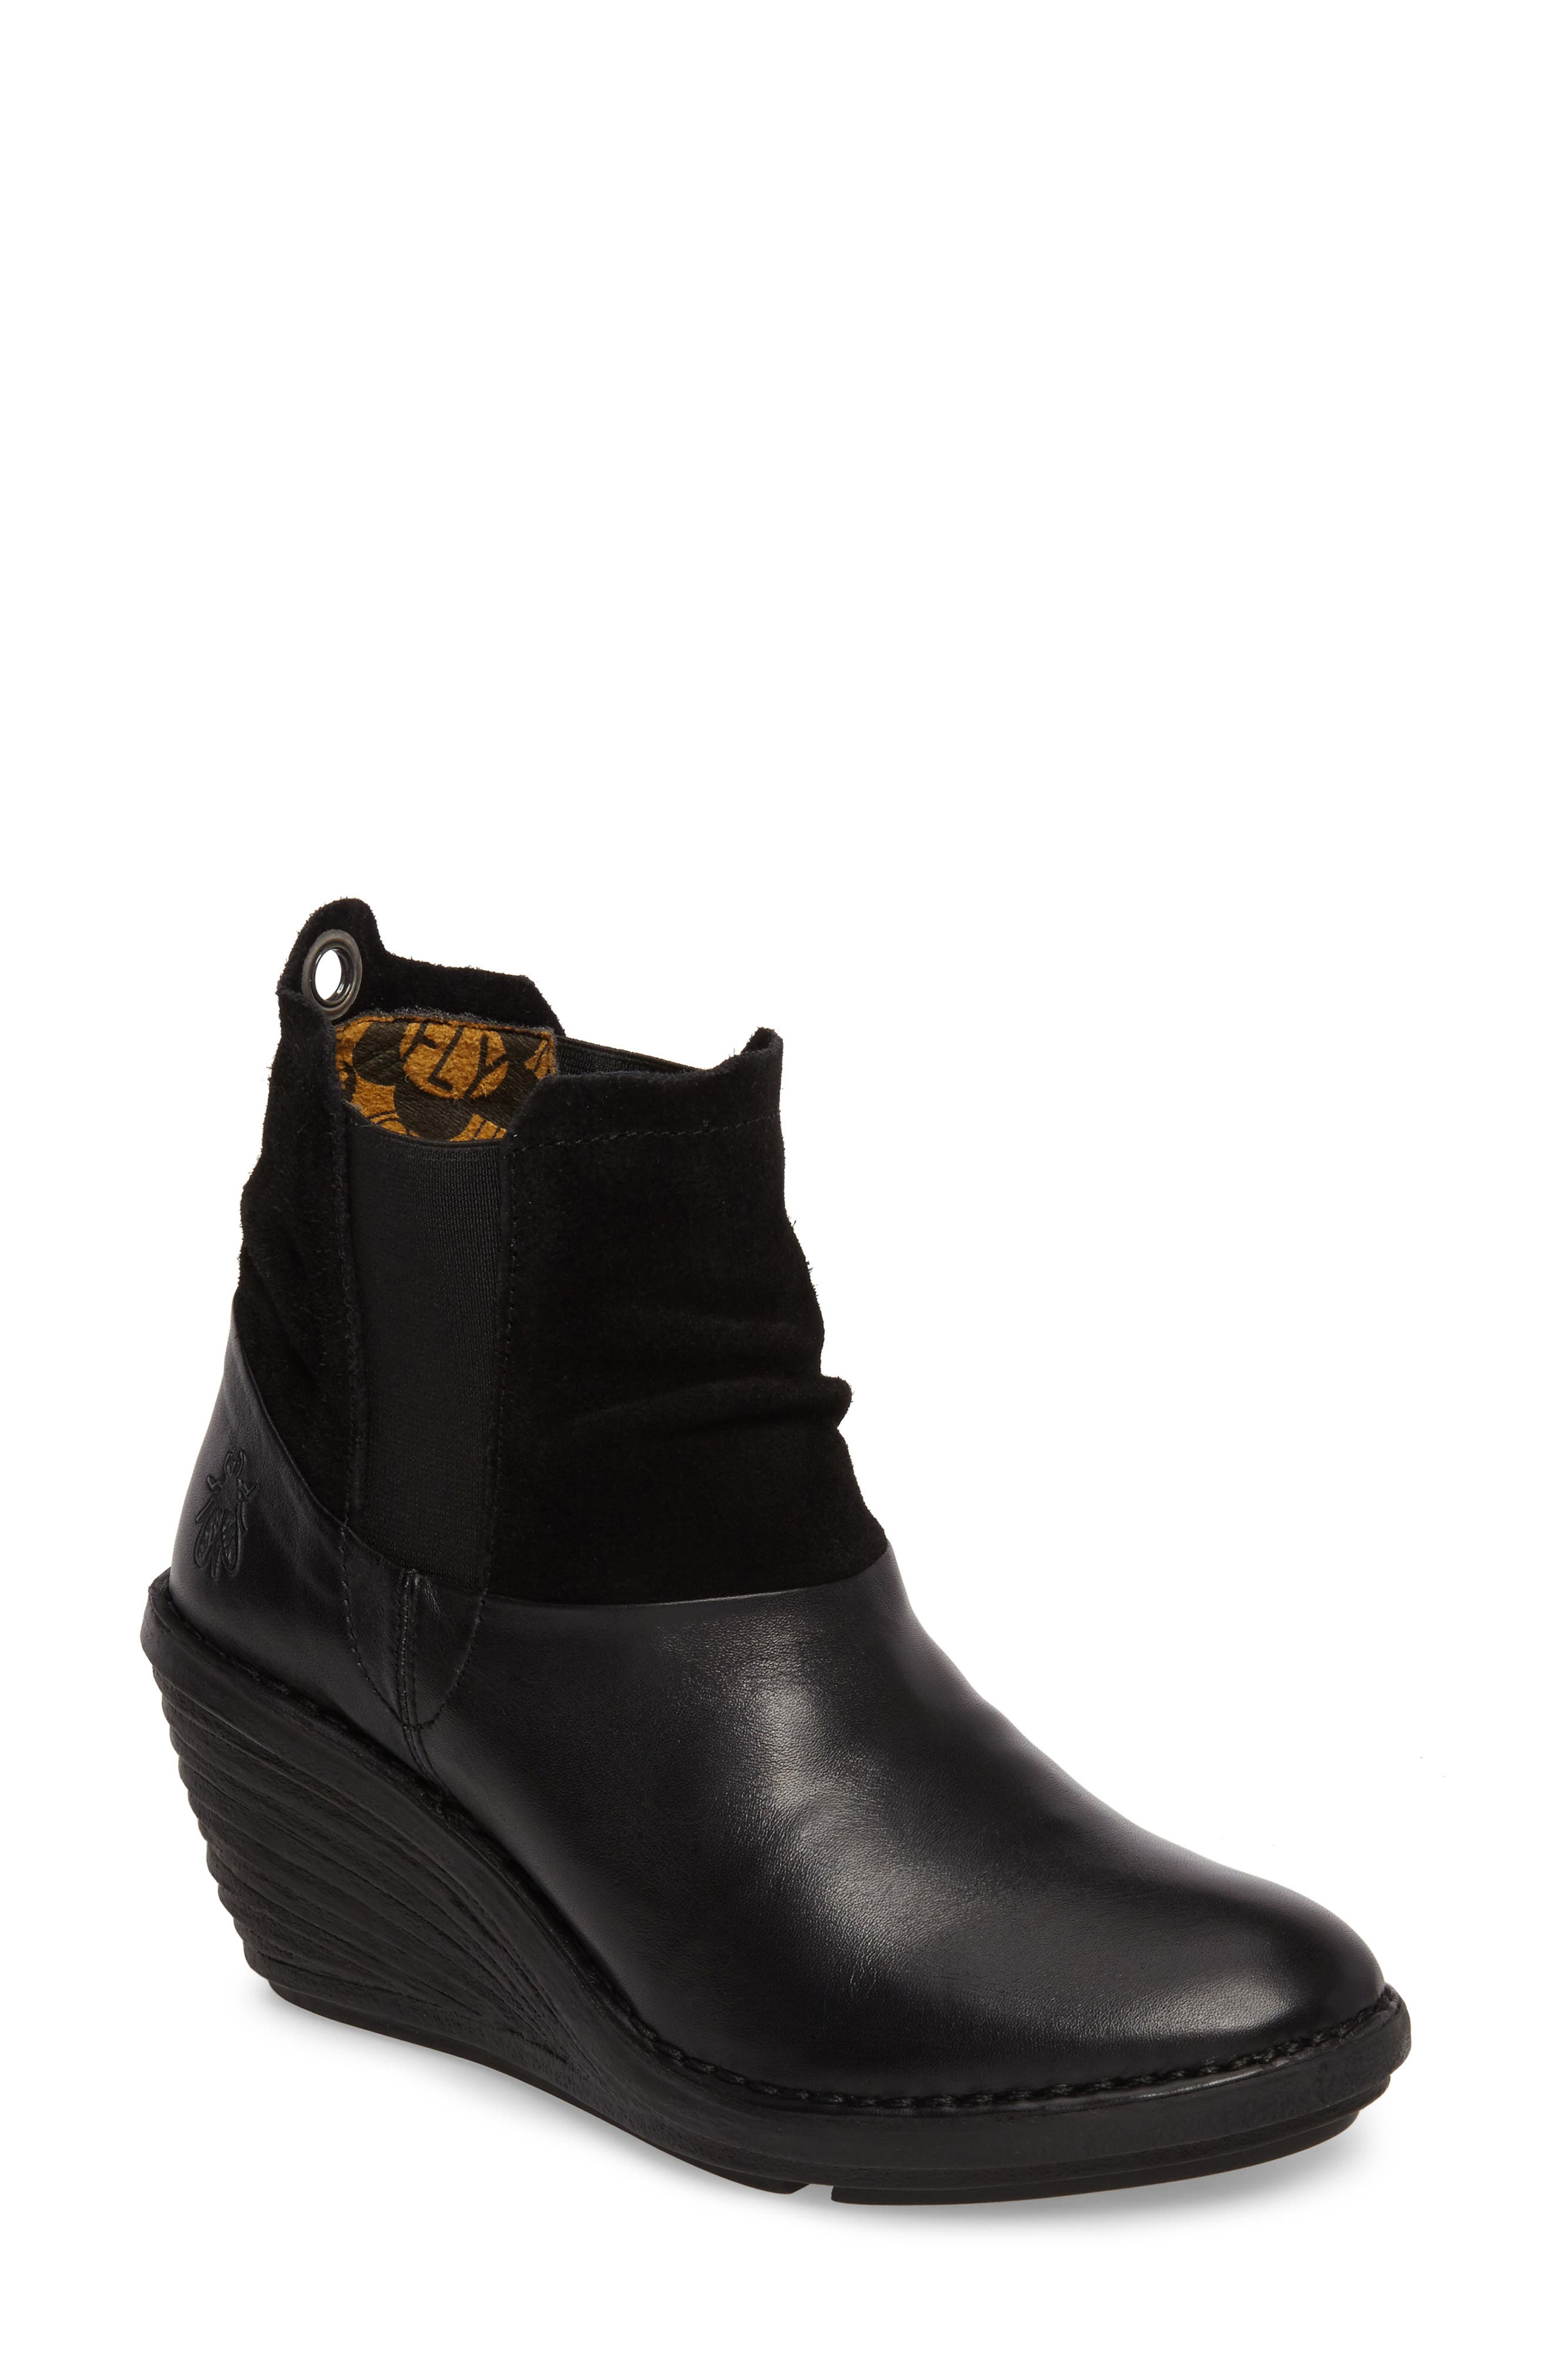 Main Image - Fly London Sula Wedge Bootie (Women)